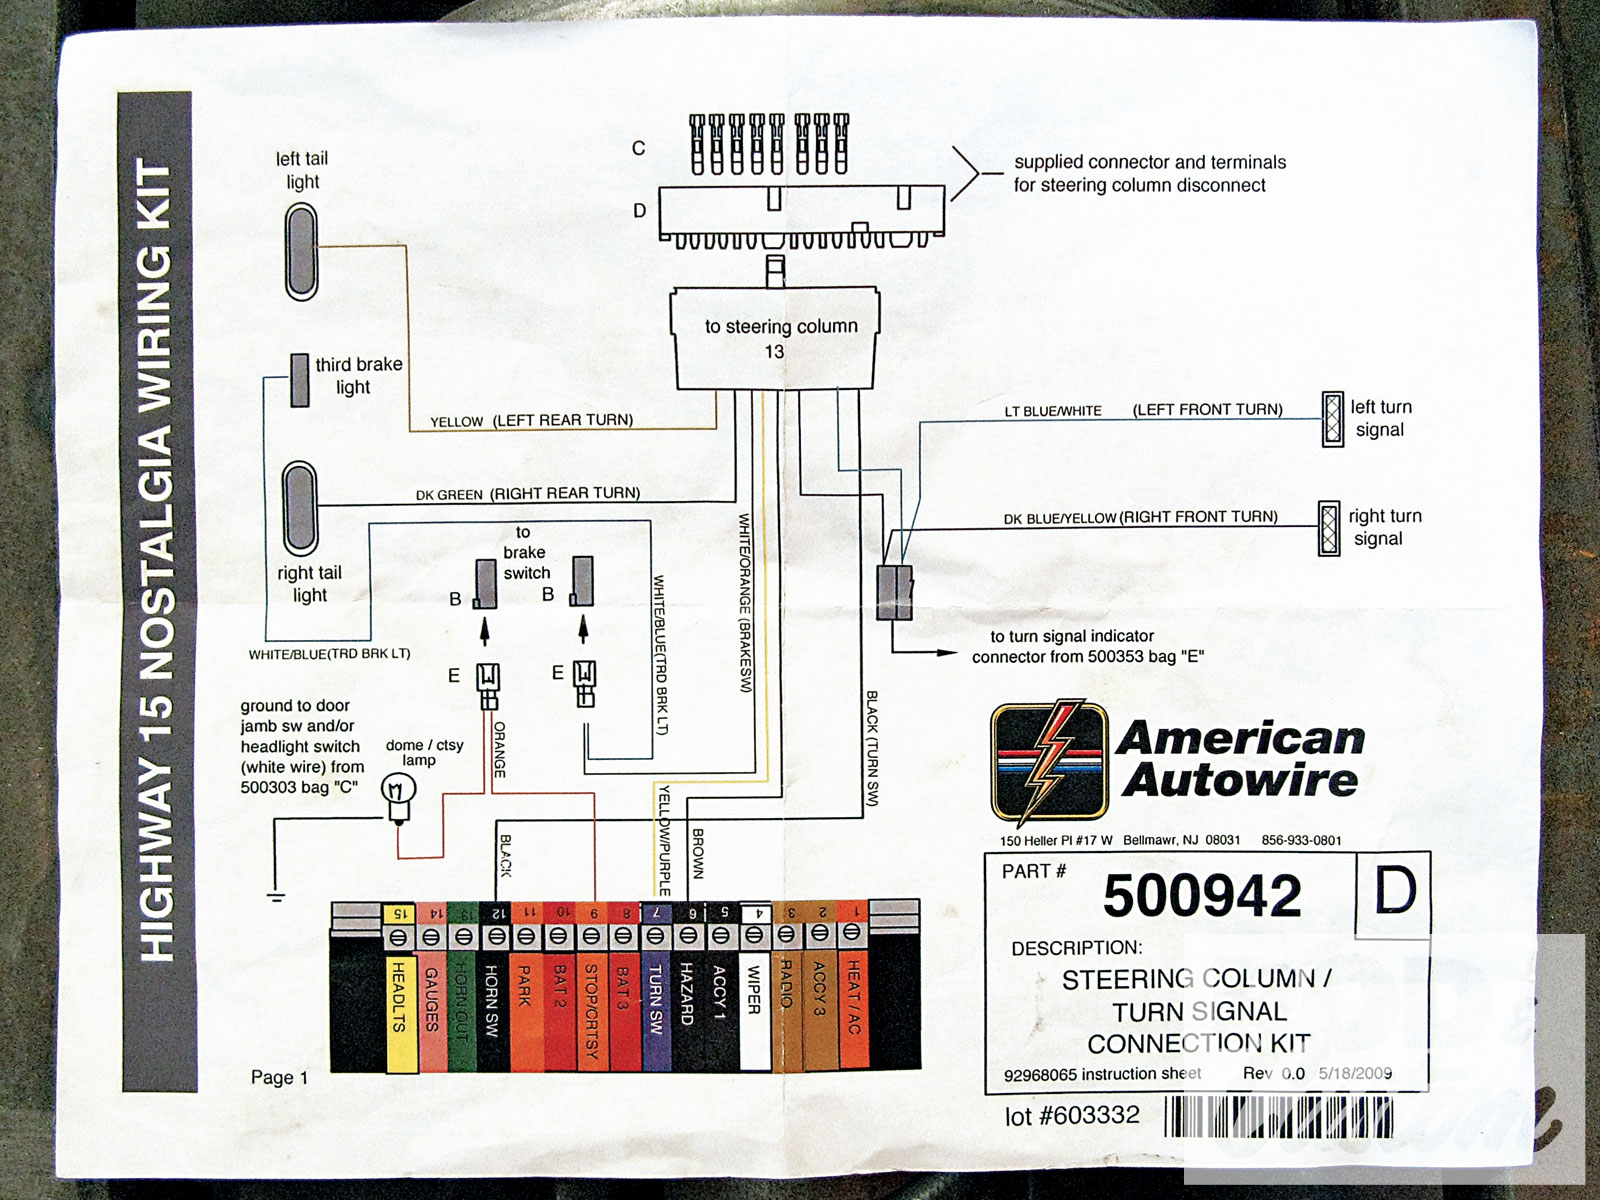 hight resolution of 84 chevy steering column wiring diagram wiring library gm cruise control wiring diagram 84 chevy steering